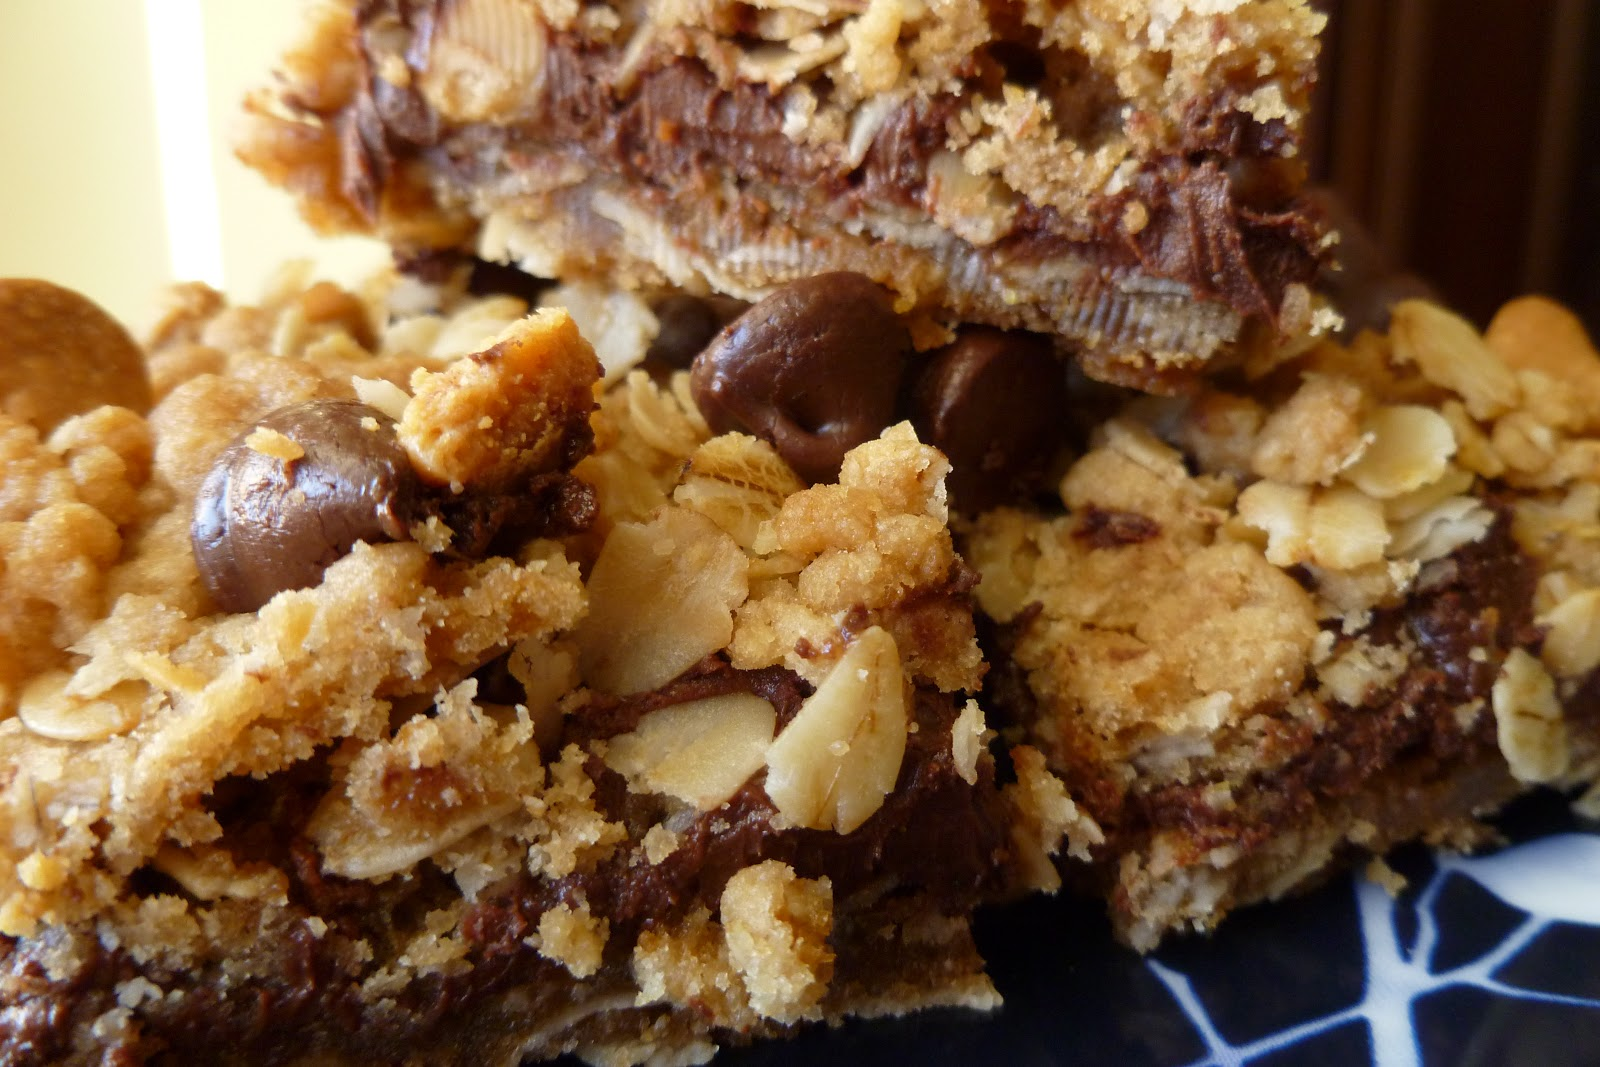 The Pastry Chef's Baking: Peanut Butter & Chocolate Oatmeal Bars